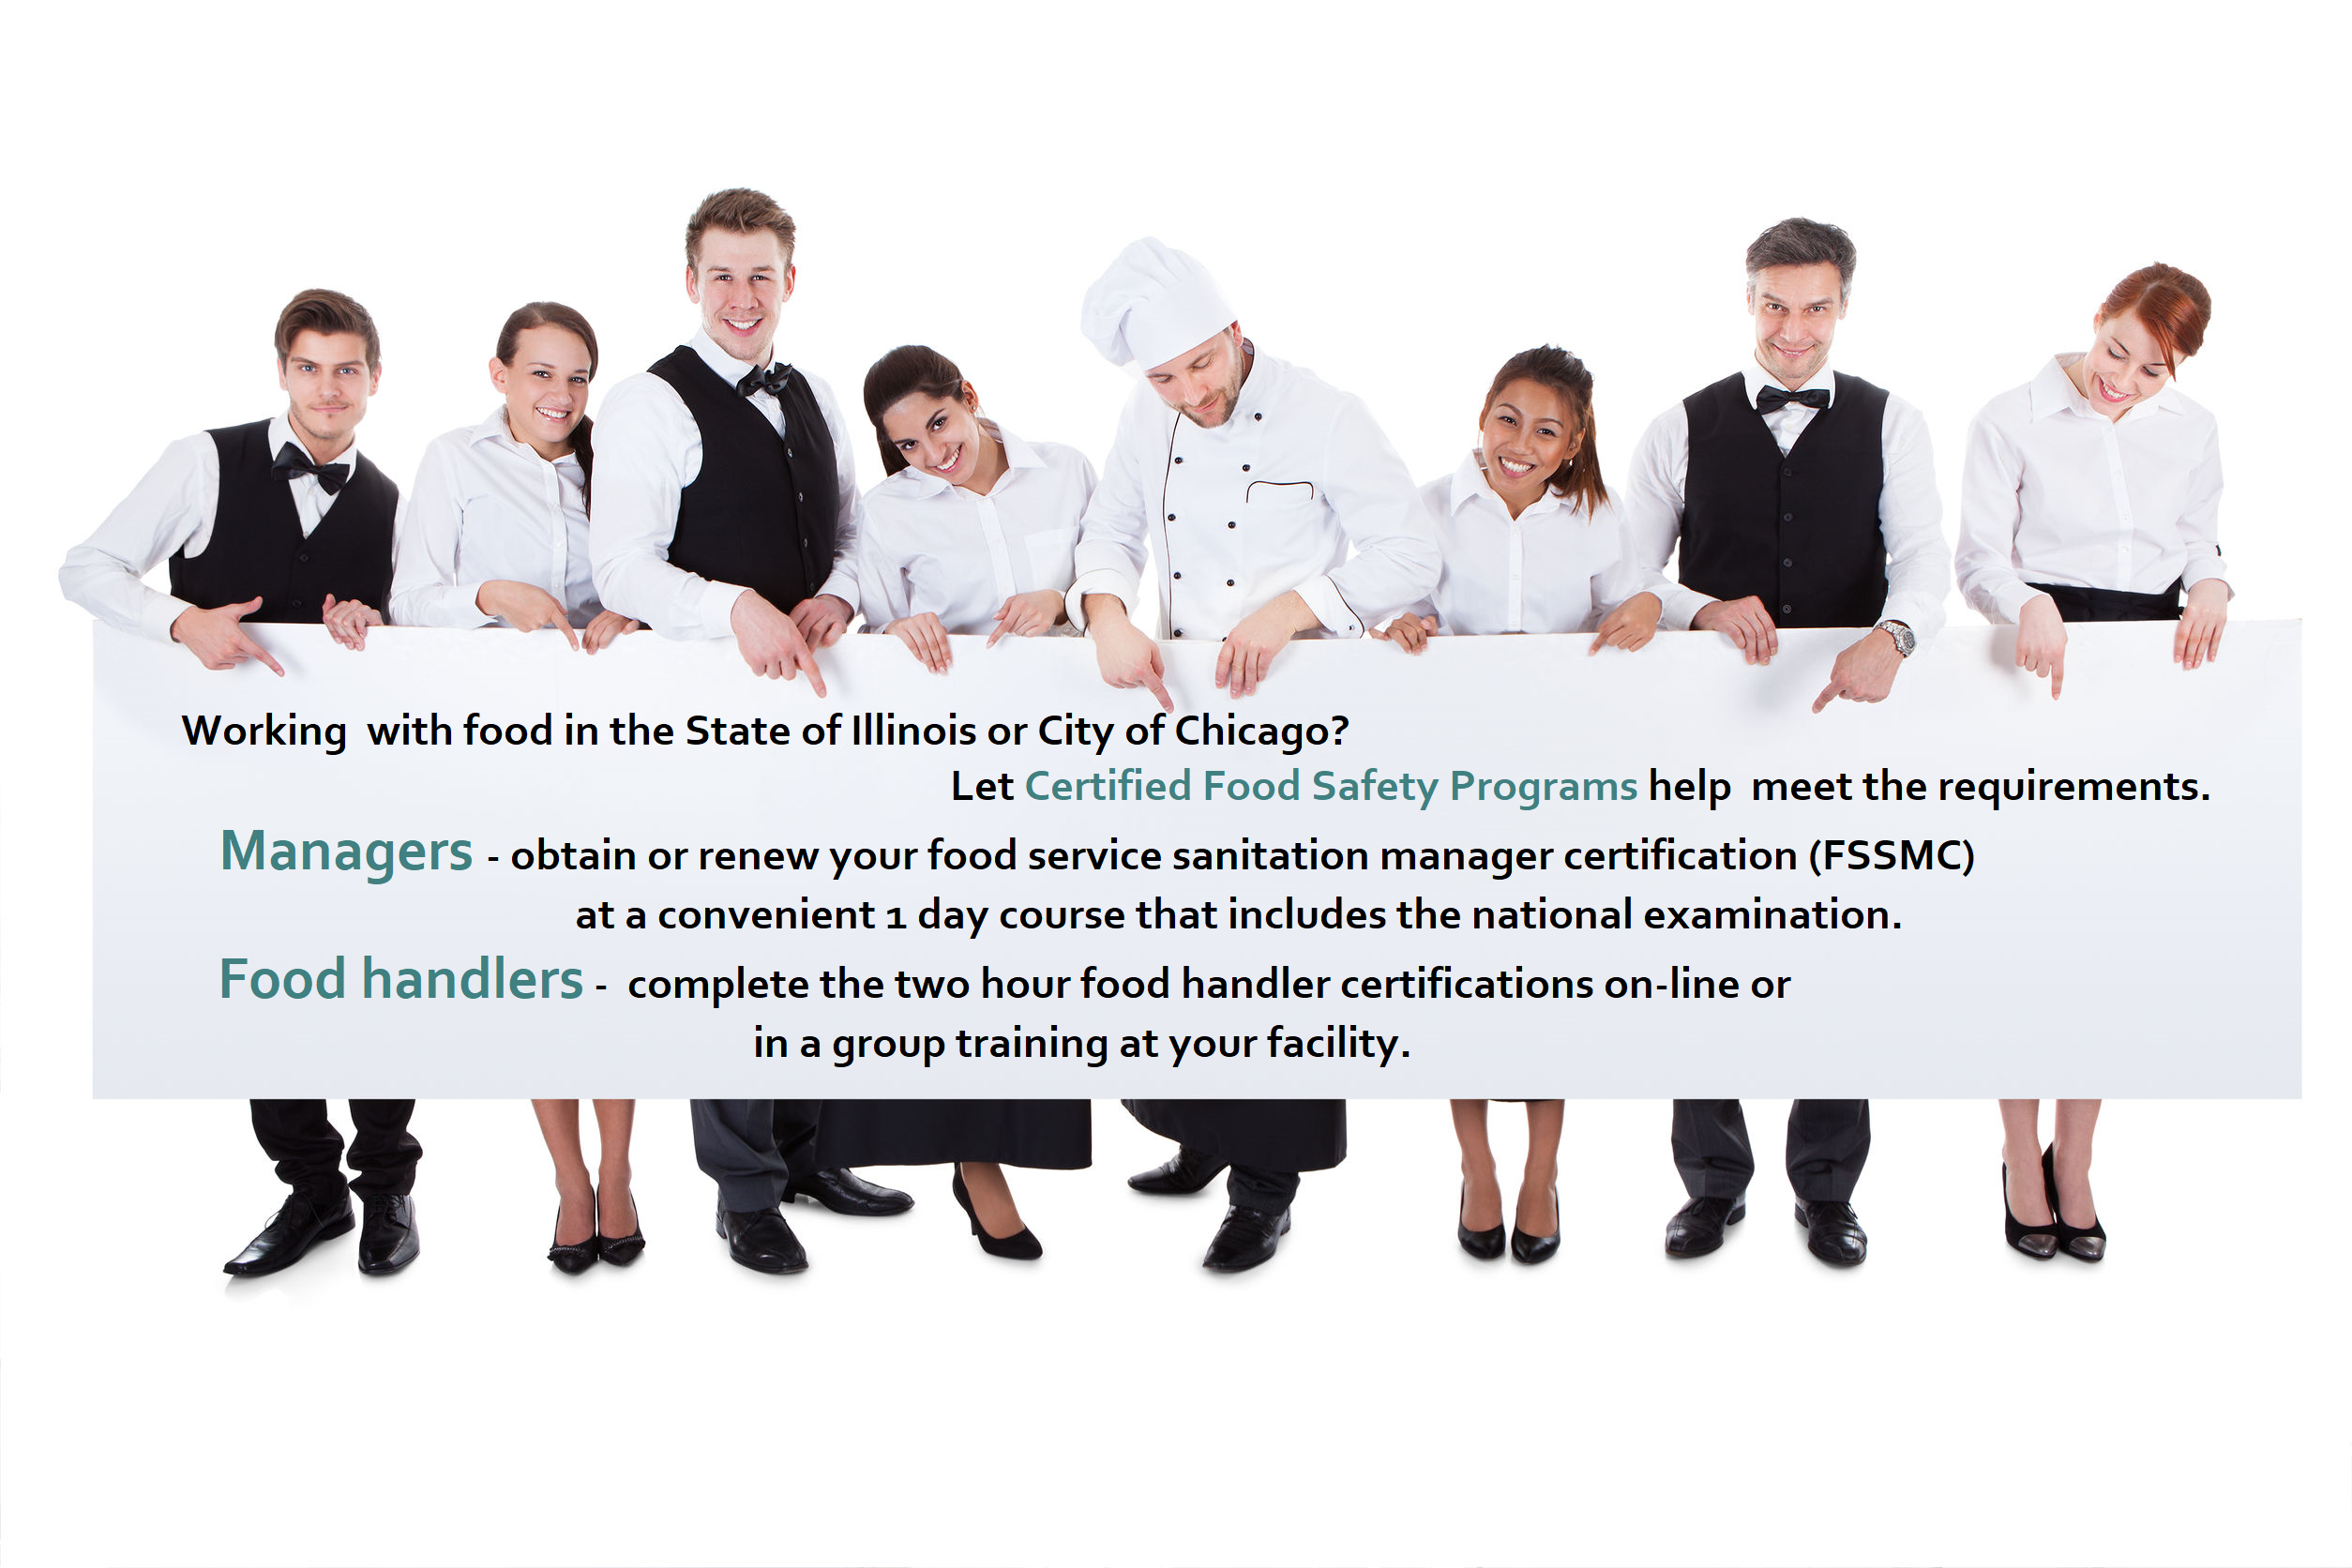 Food Service Sanitation Manager And Food Handler Certification In